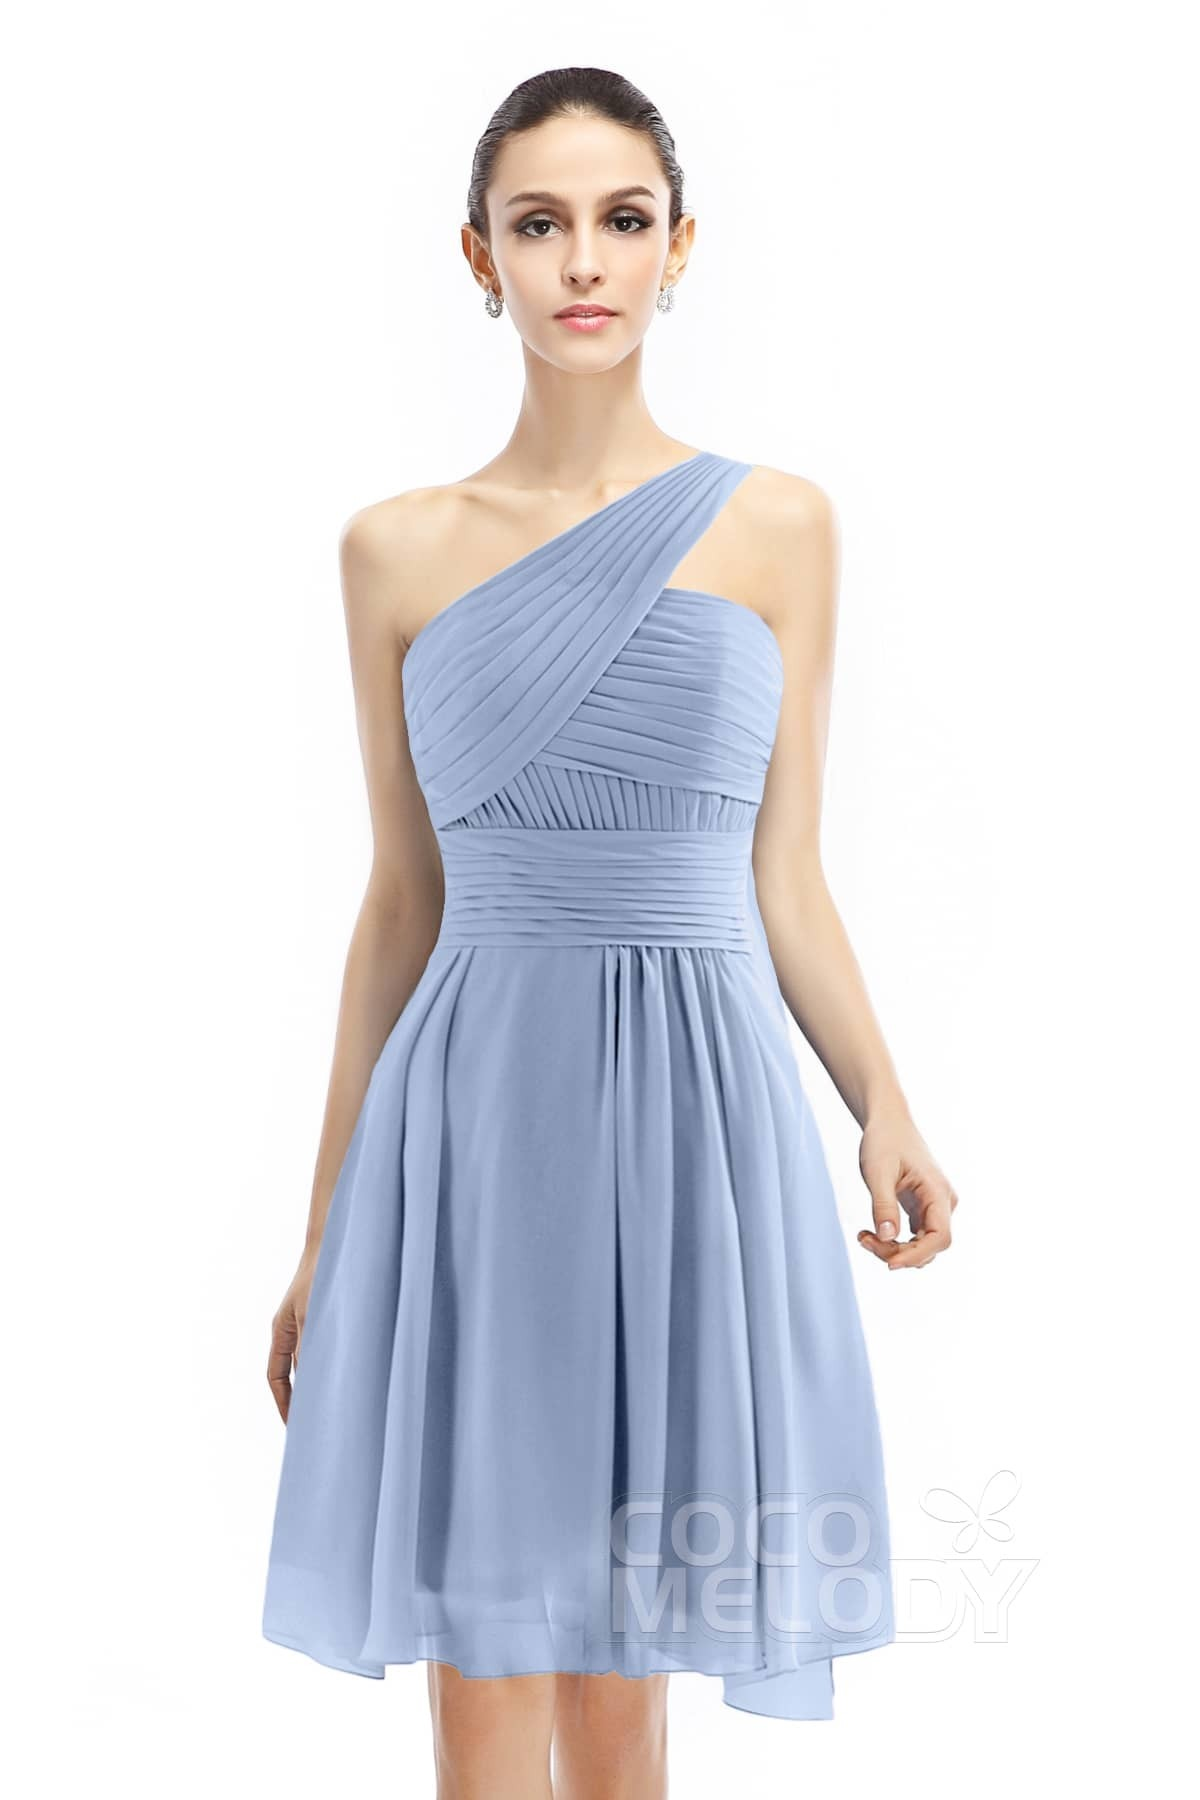 Glamour A-Line One Shoulder Natural Knee Length Chiffon Sleeveless Zipper Bridesmaid Dress with Pleating COZK1401C